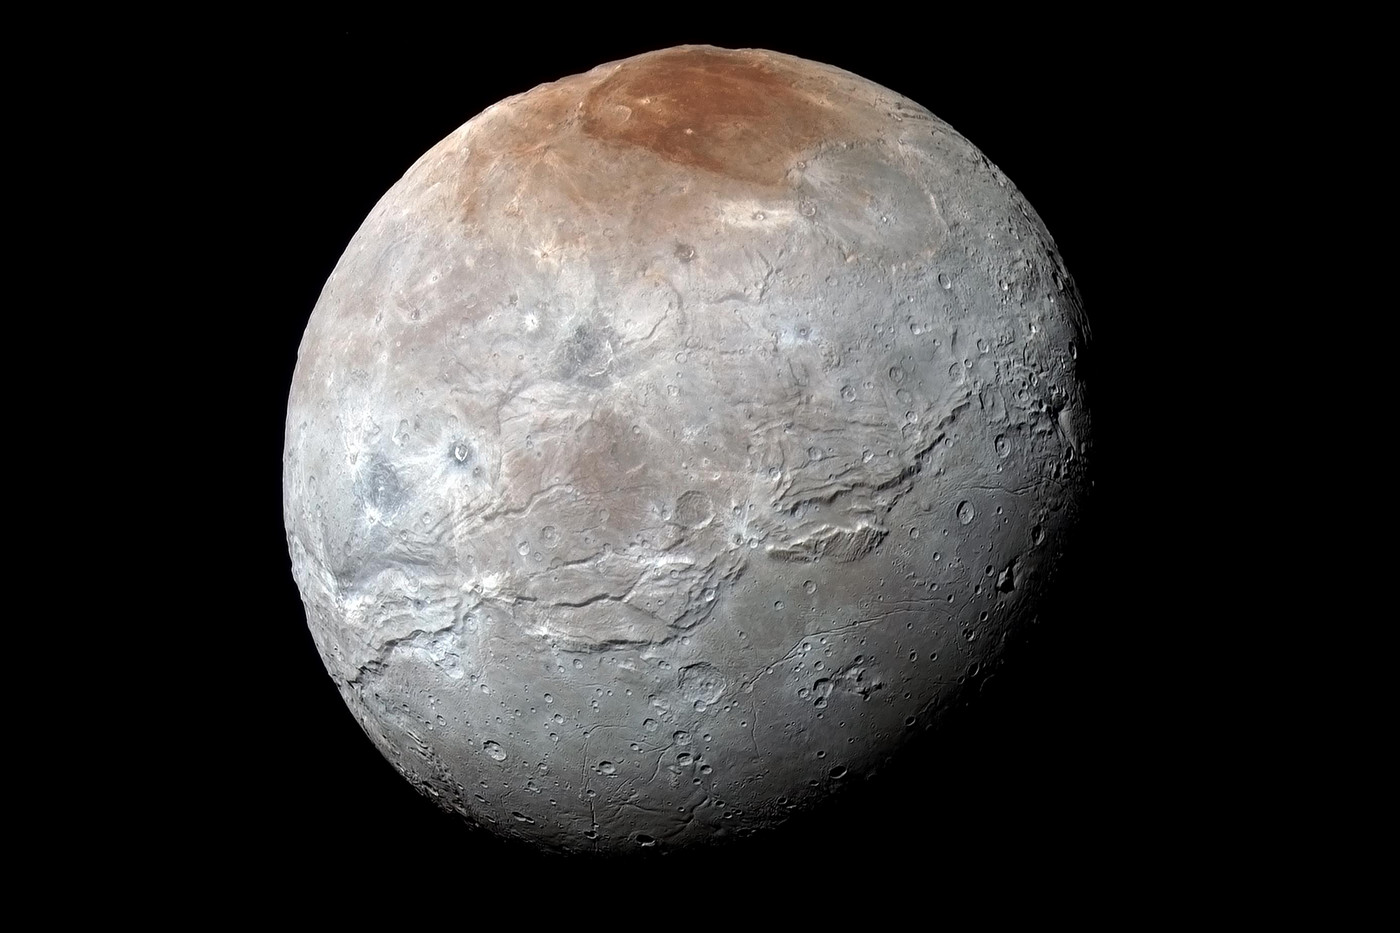 NASA shows off a stunning new color photo of Pluto's moon, Charon - The  Verge